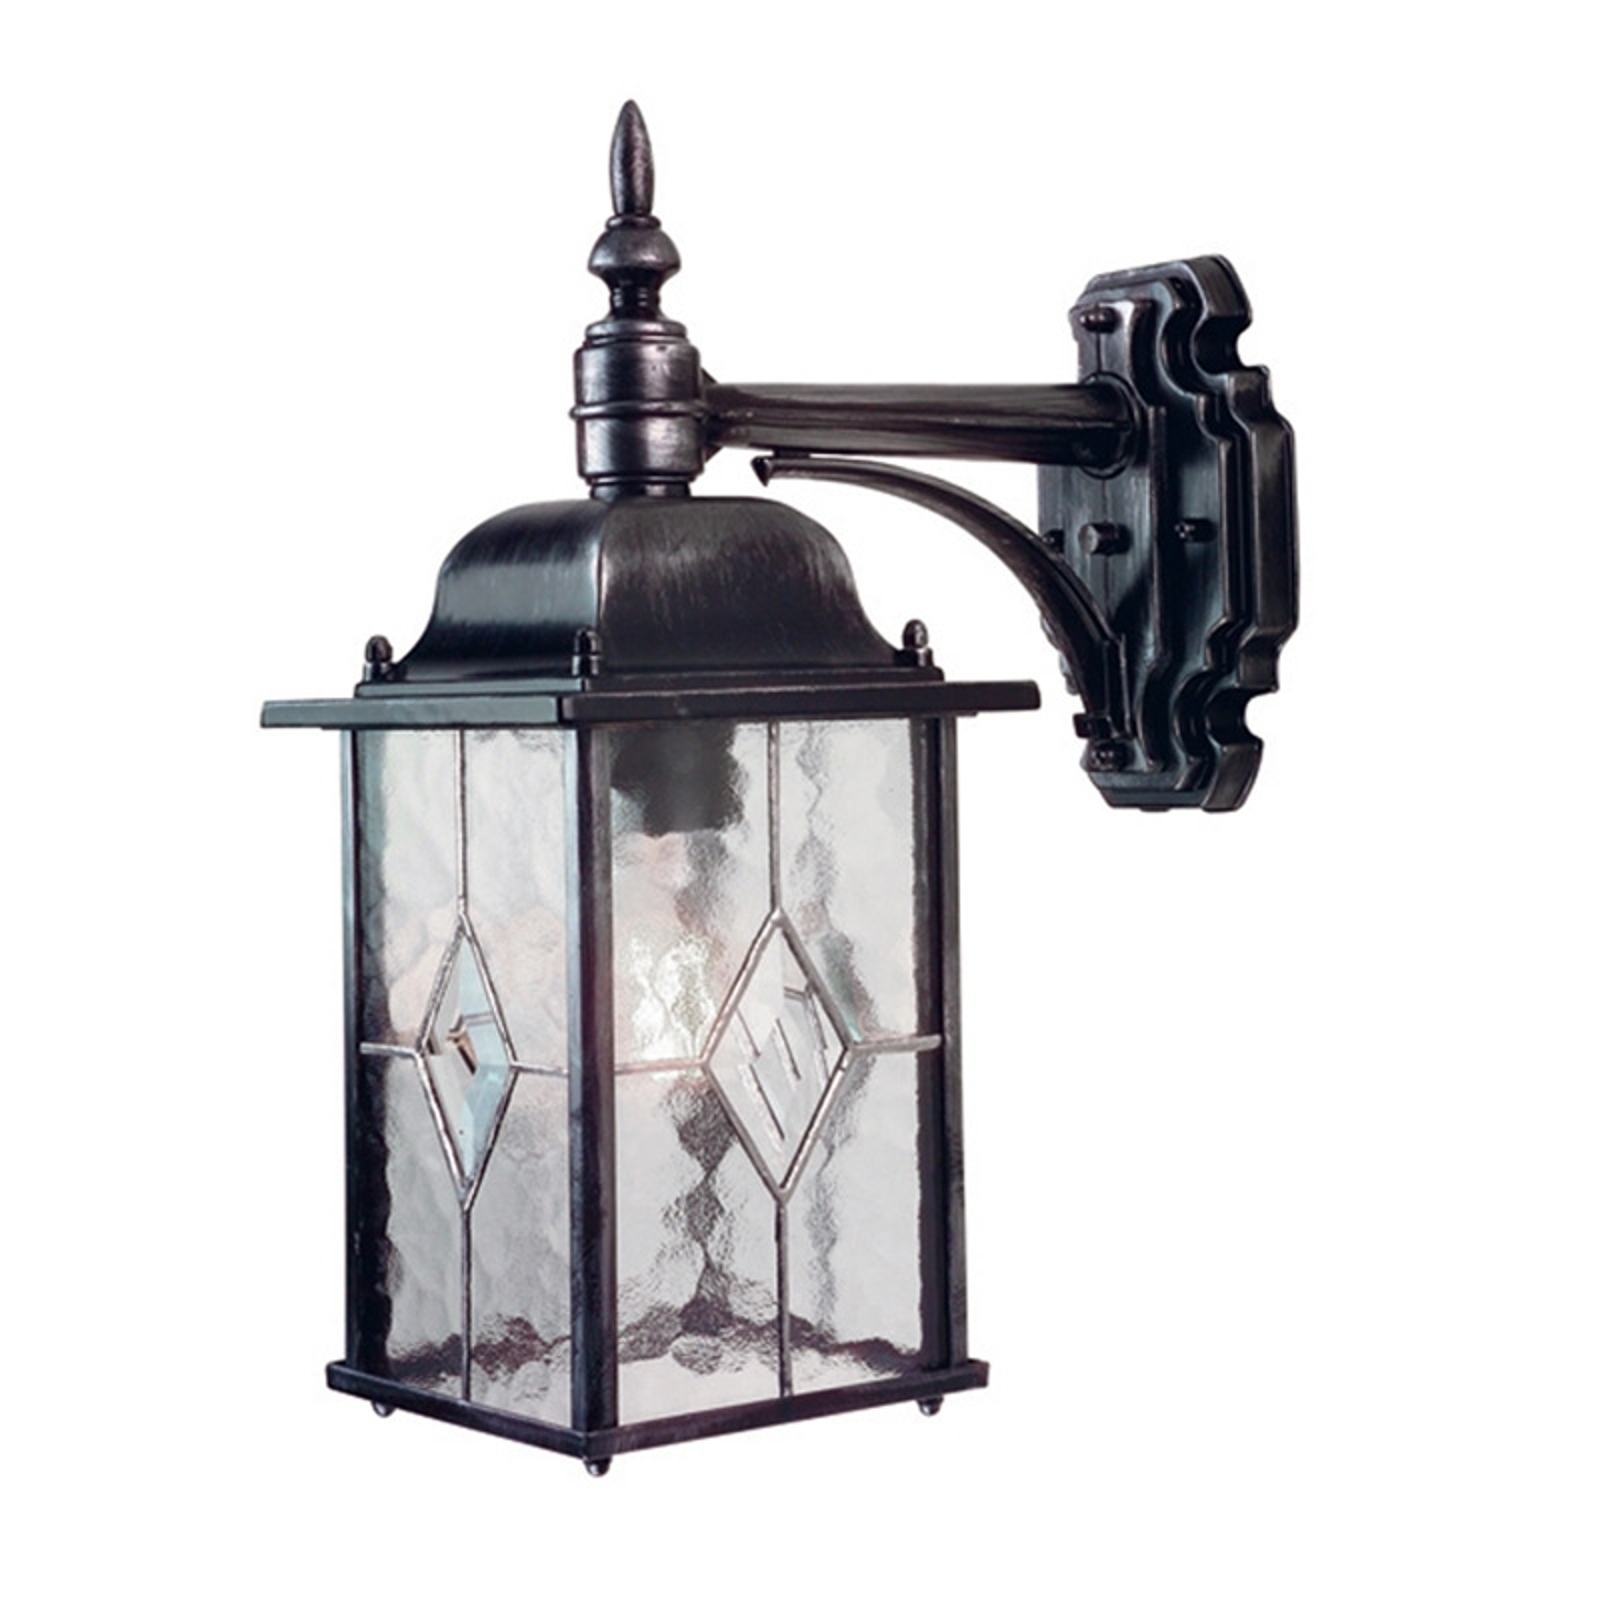 Wexford WX2 outdoor wall light, hanging lantern_3048210_1